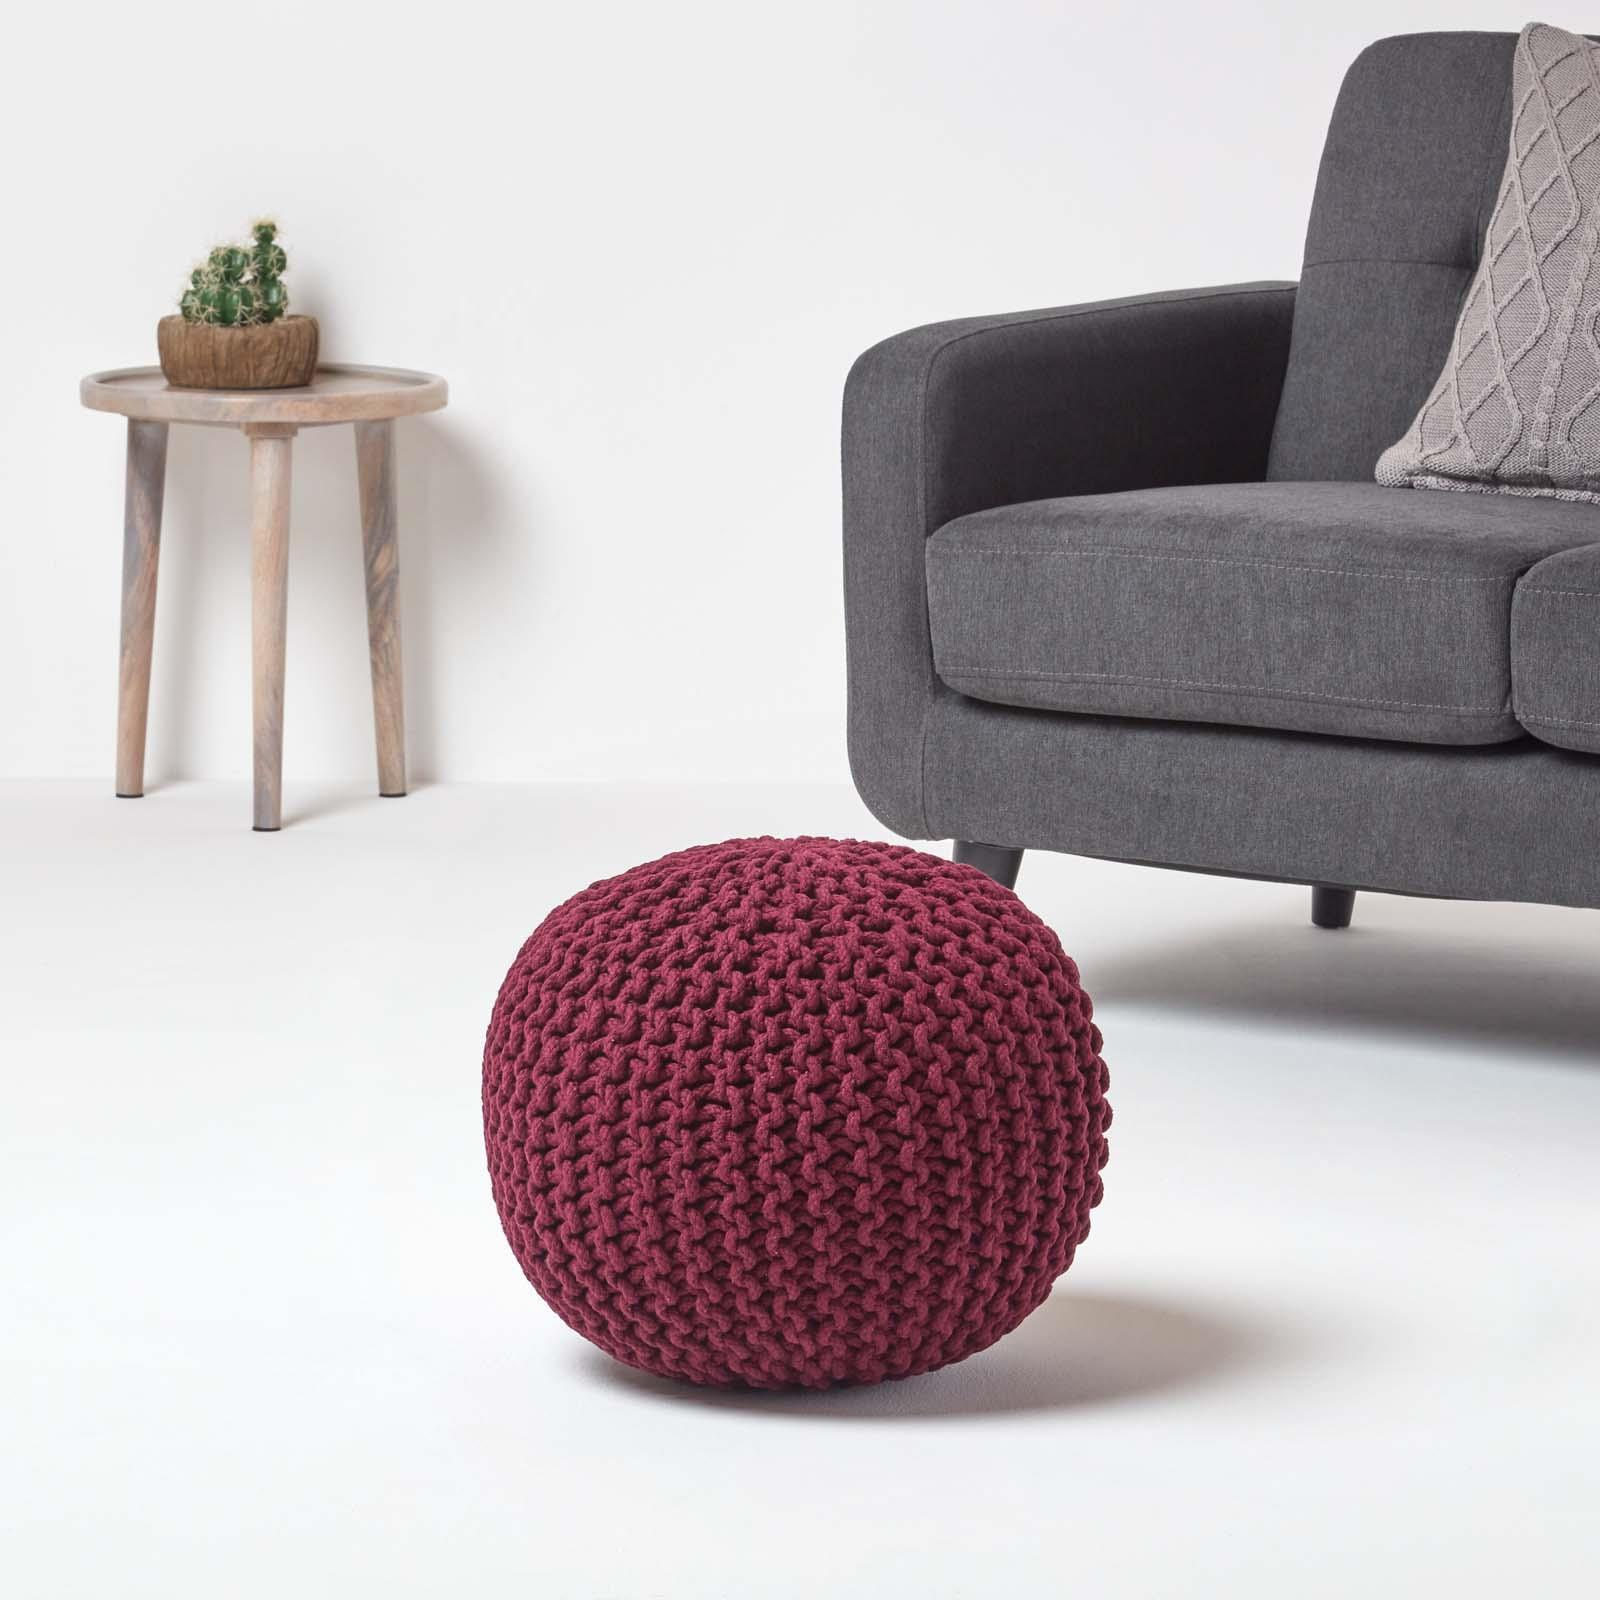 Hand-Knitted-100-Cotton-Pouffes-Round-Sphere-Or-Cube-Square-Chunky-Footstools thumbnail 153